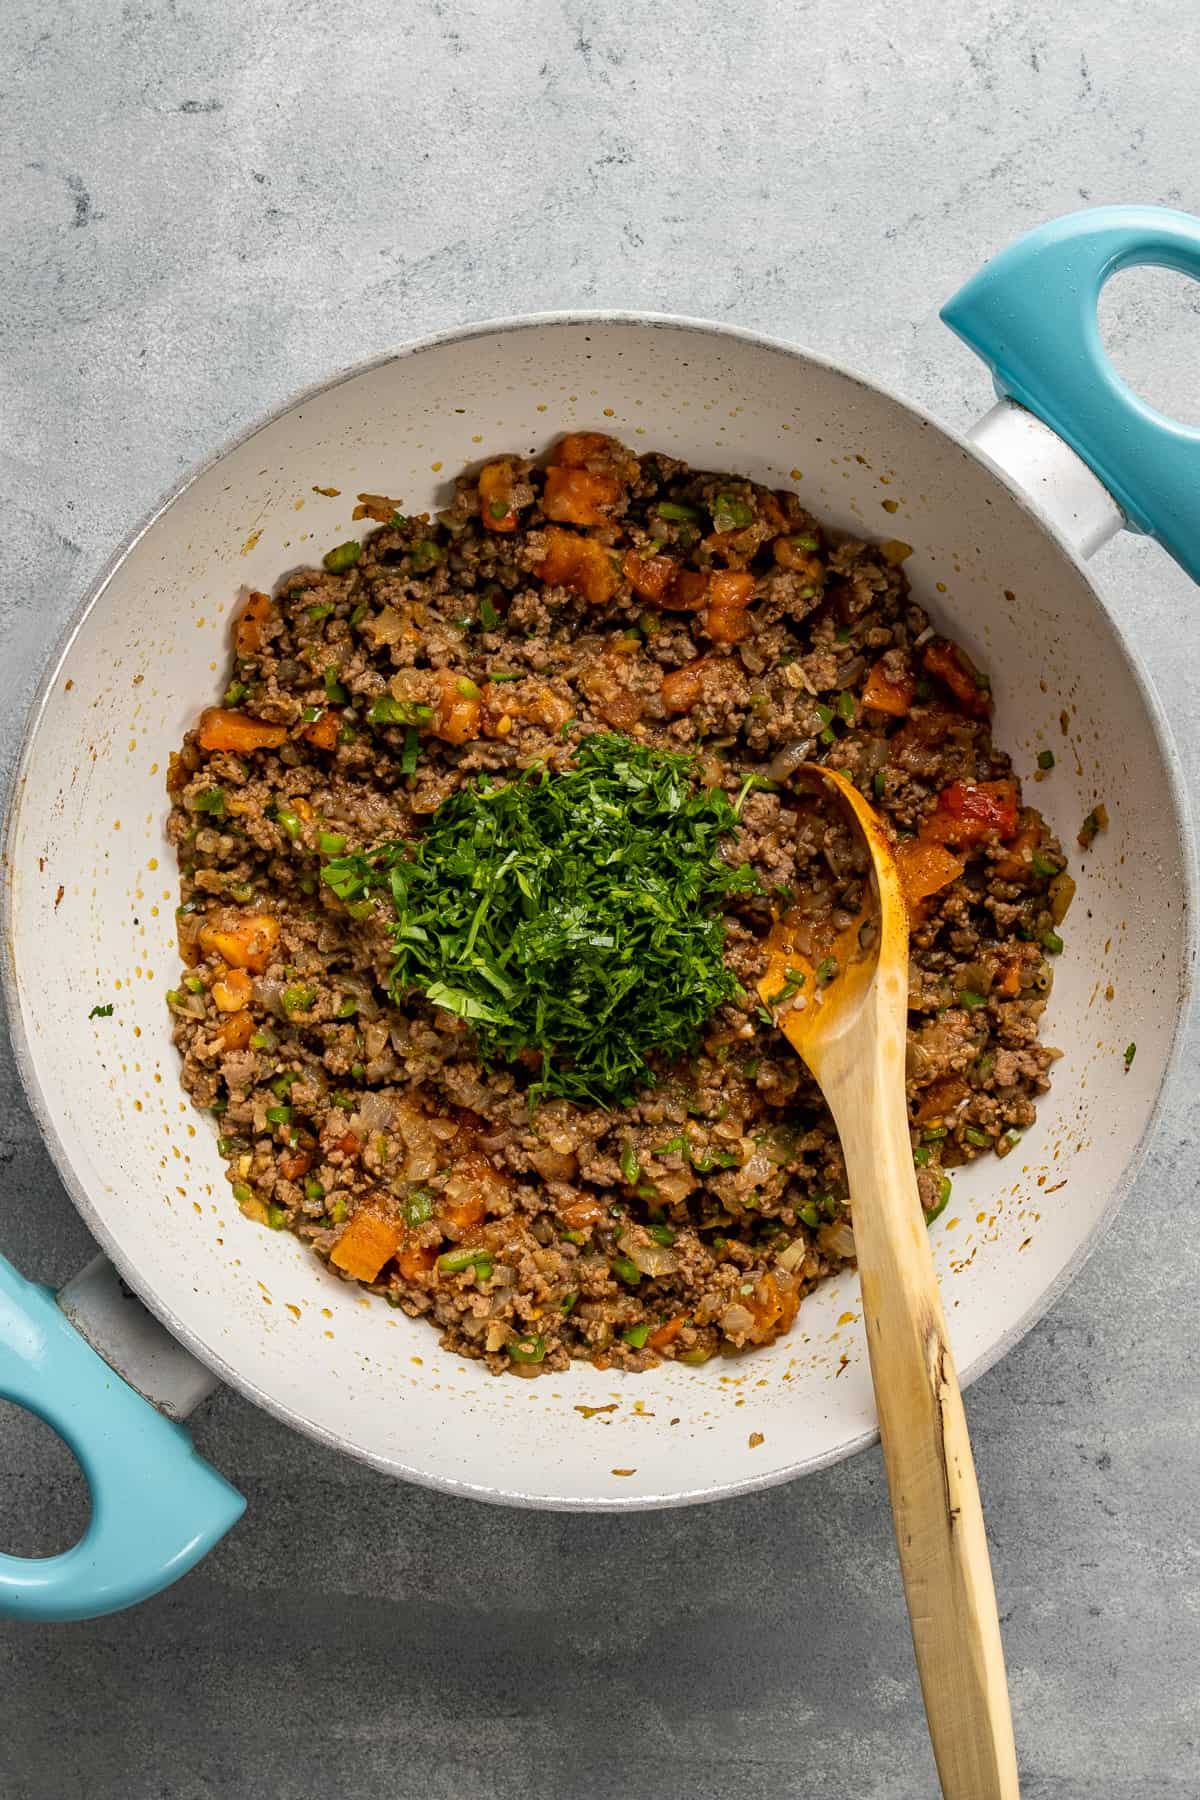 Ground beef filling with tomatoes and parsley in a white pan and a wooden spoon inside it.